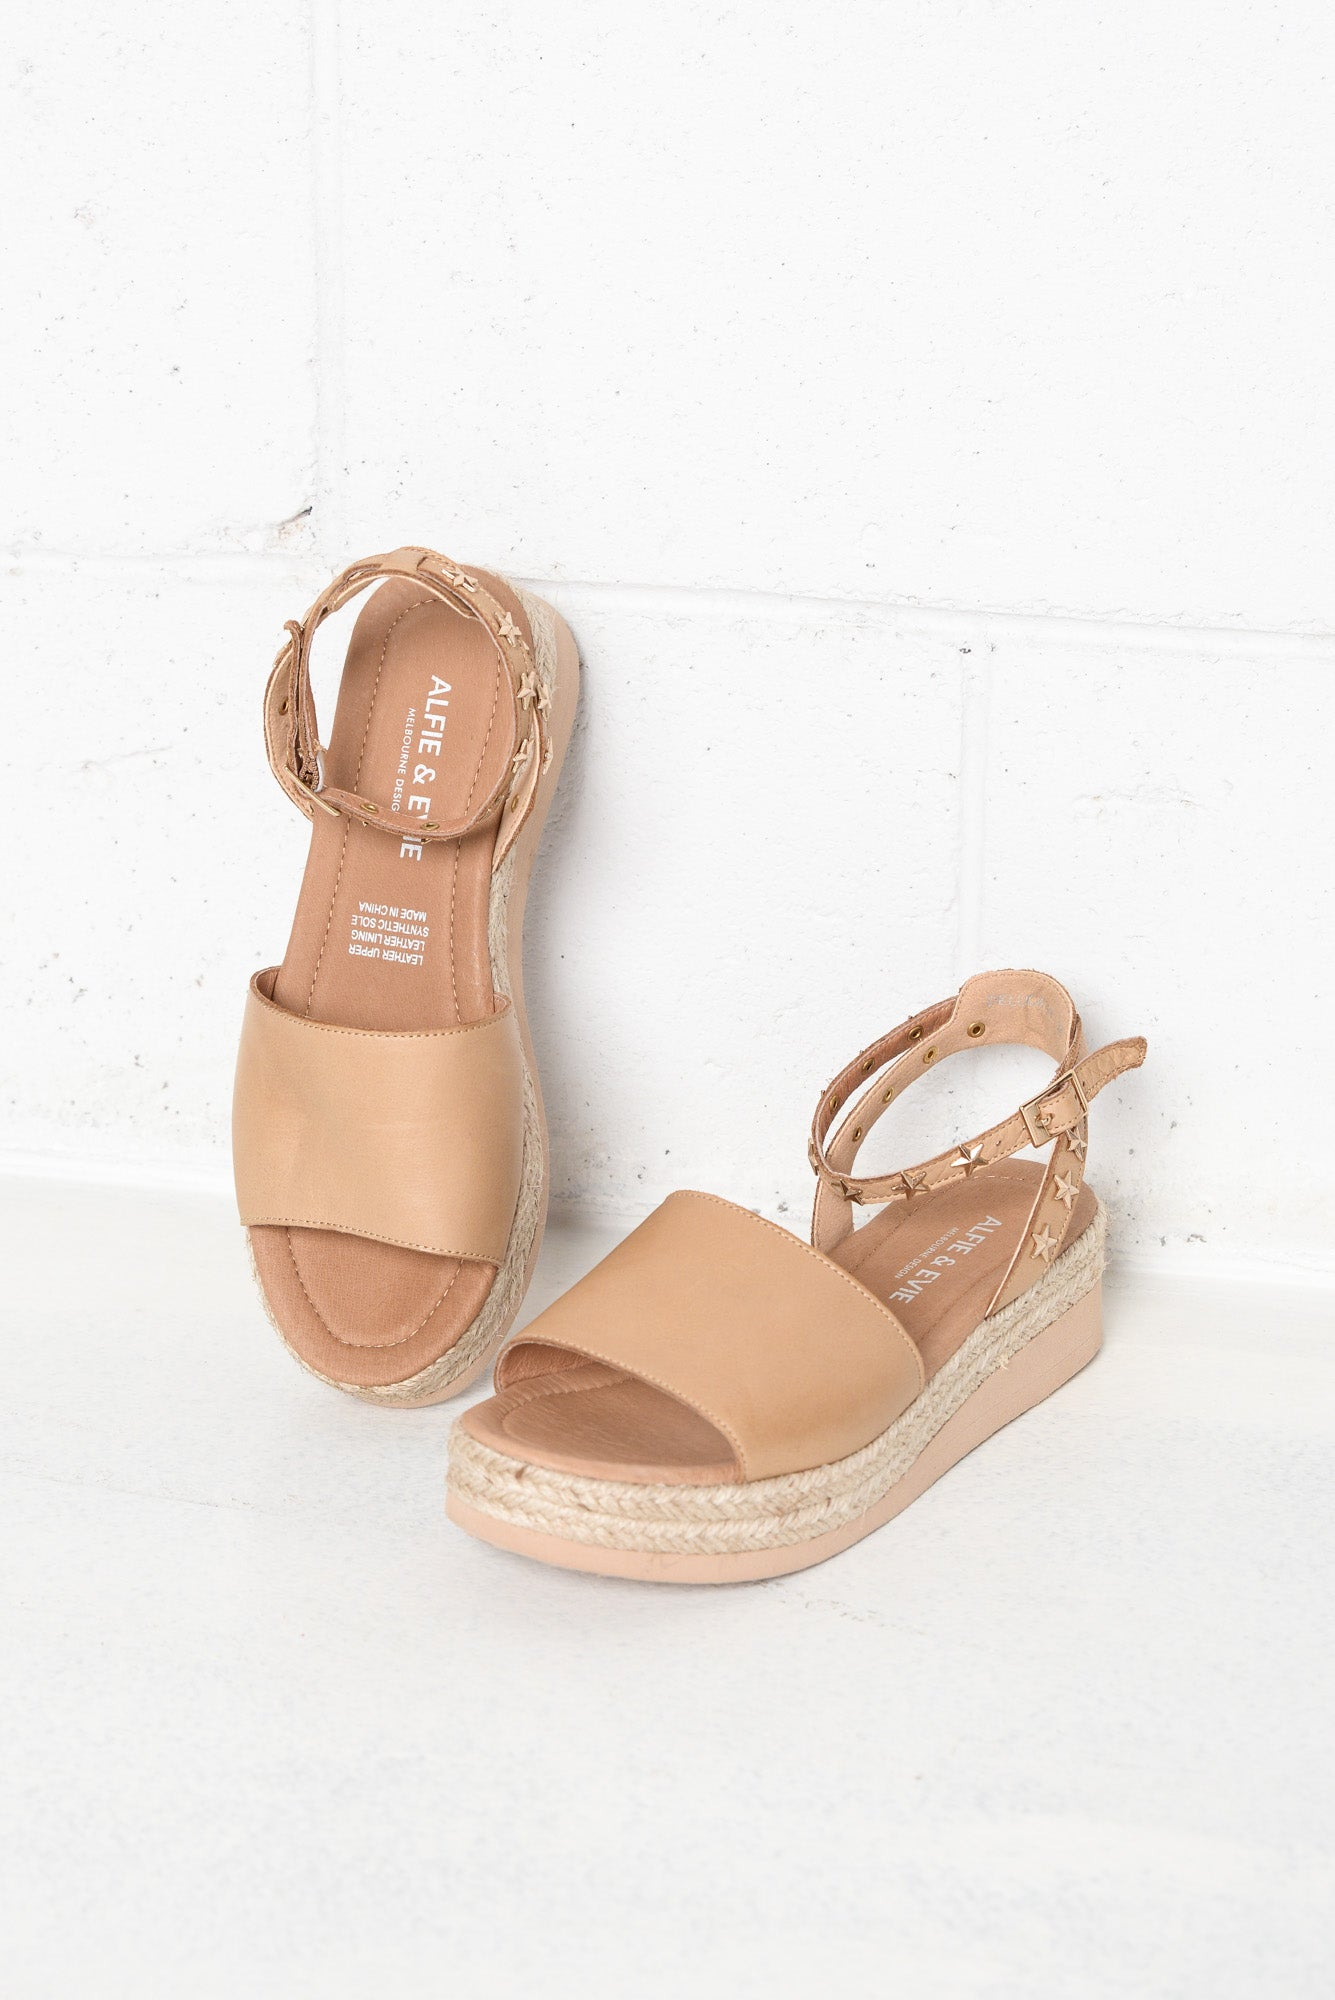 Deluca Camel Leather Sandal